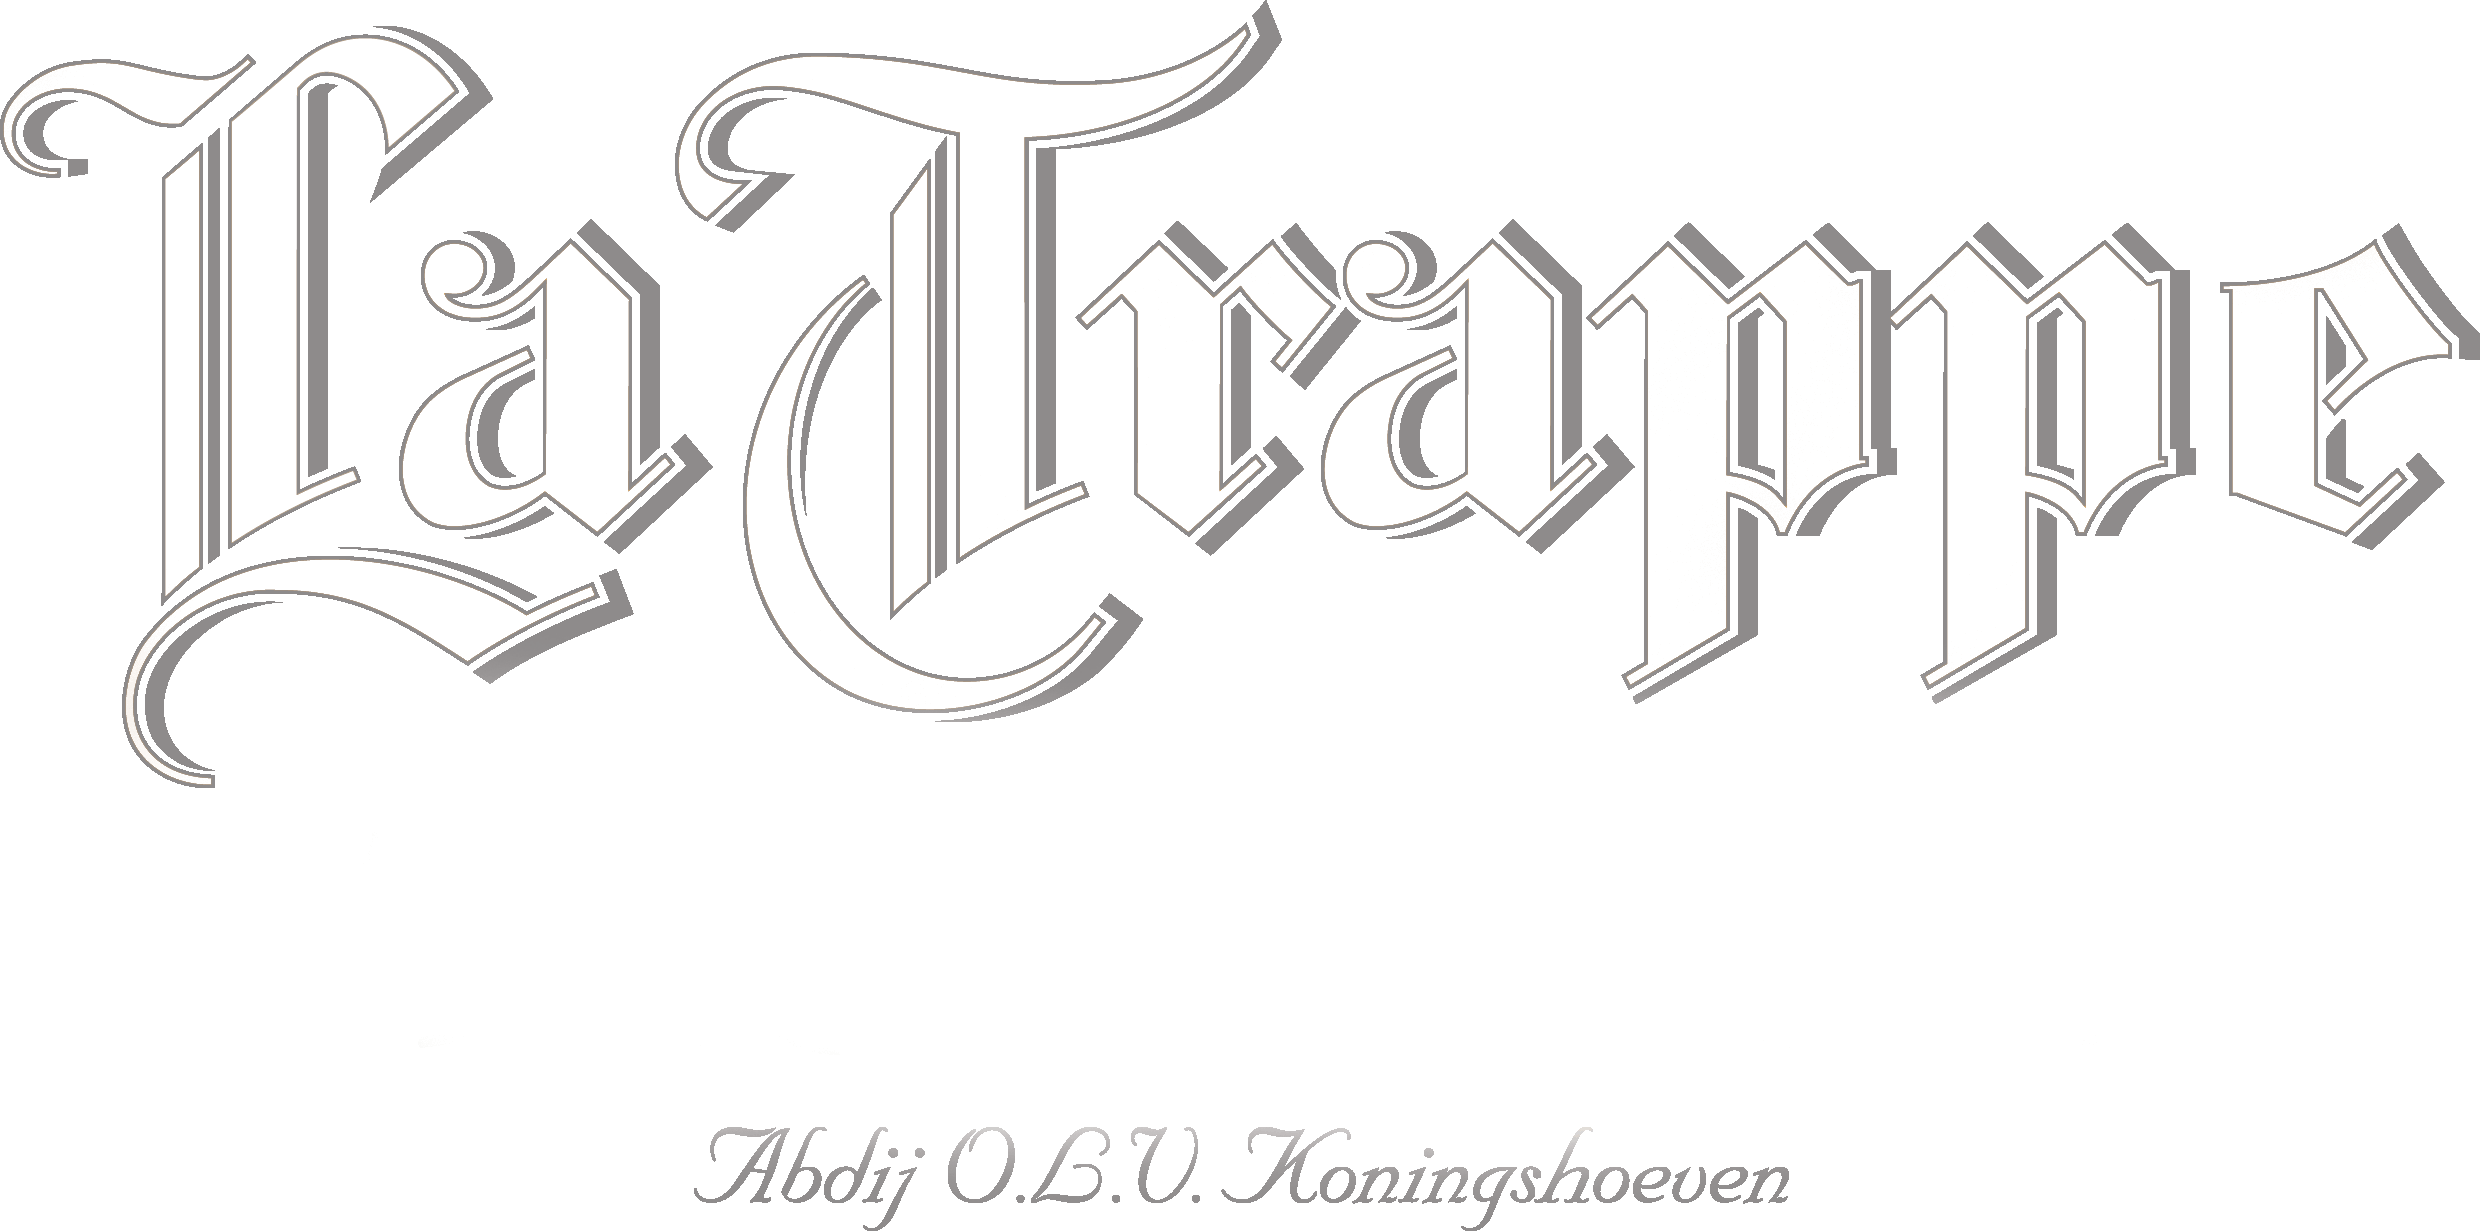 La Trappe Logo White, craft beer australia, beer importers australia, sour beer